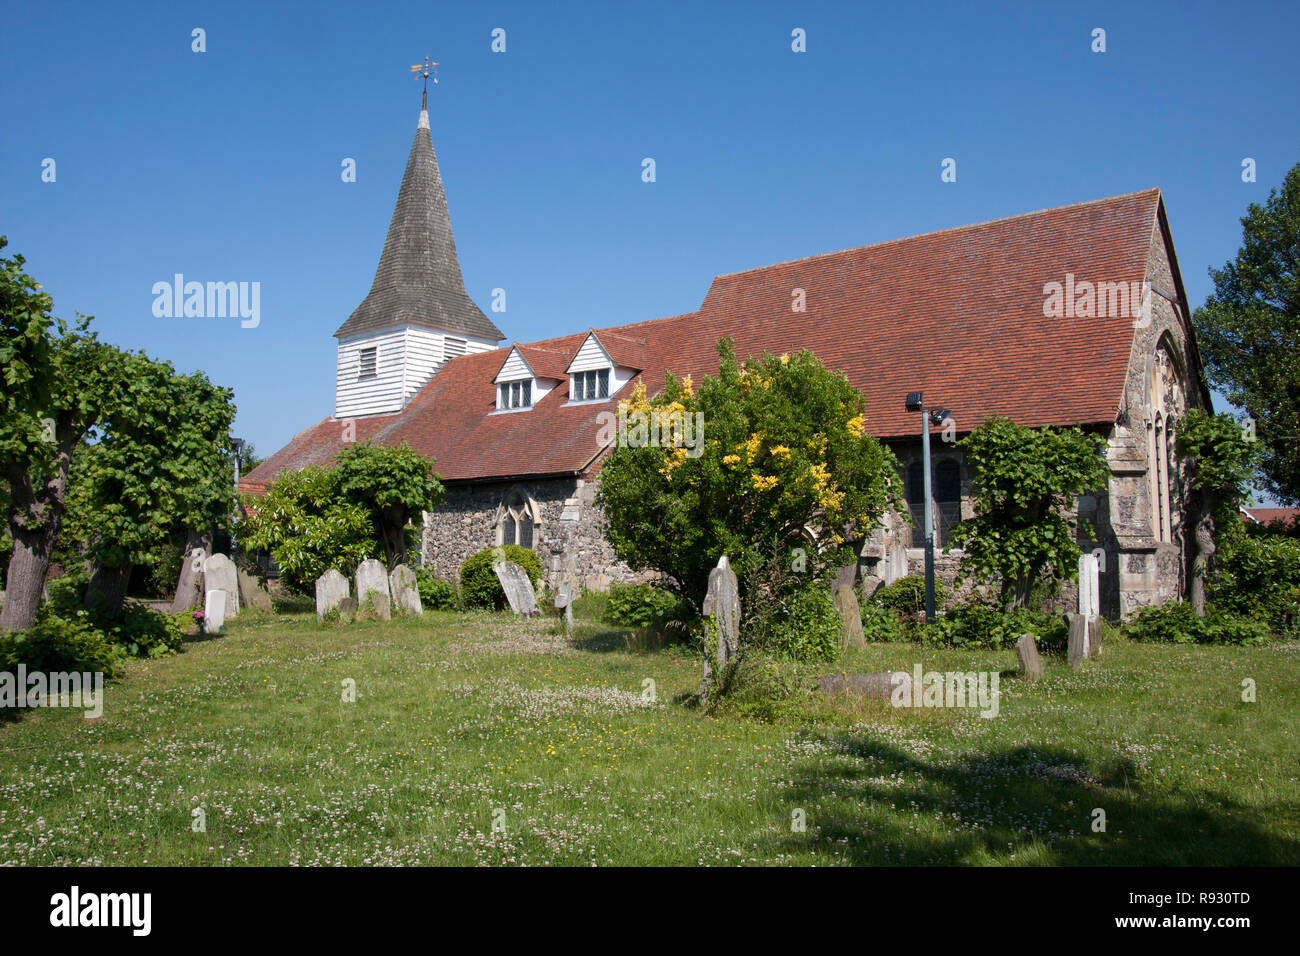 St Peter Paul Church, Horndon on the Hill, Essex, England Stock Photo